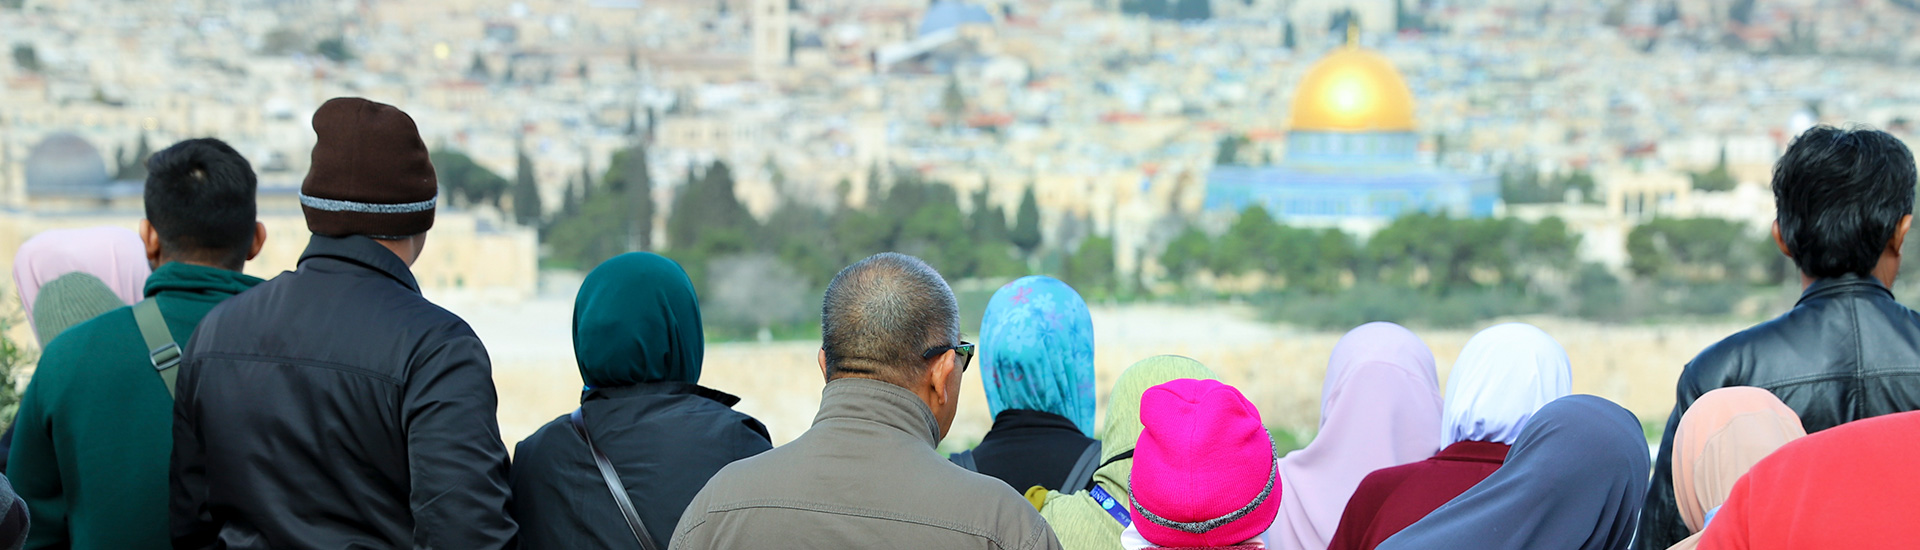 A group posing with Old Jerusalem in the background.